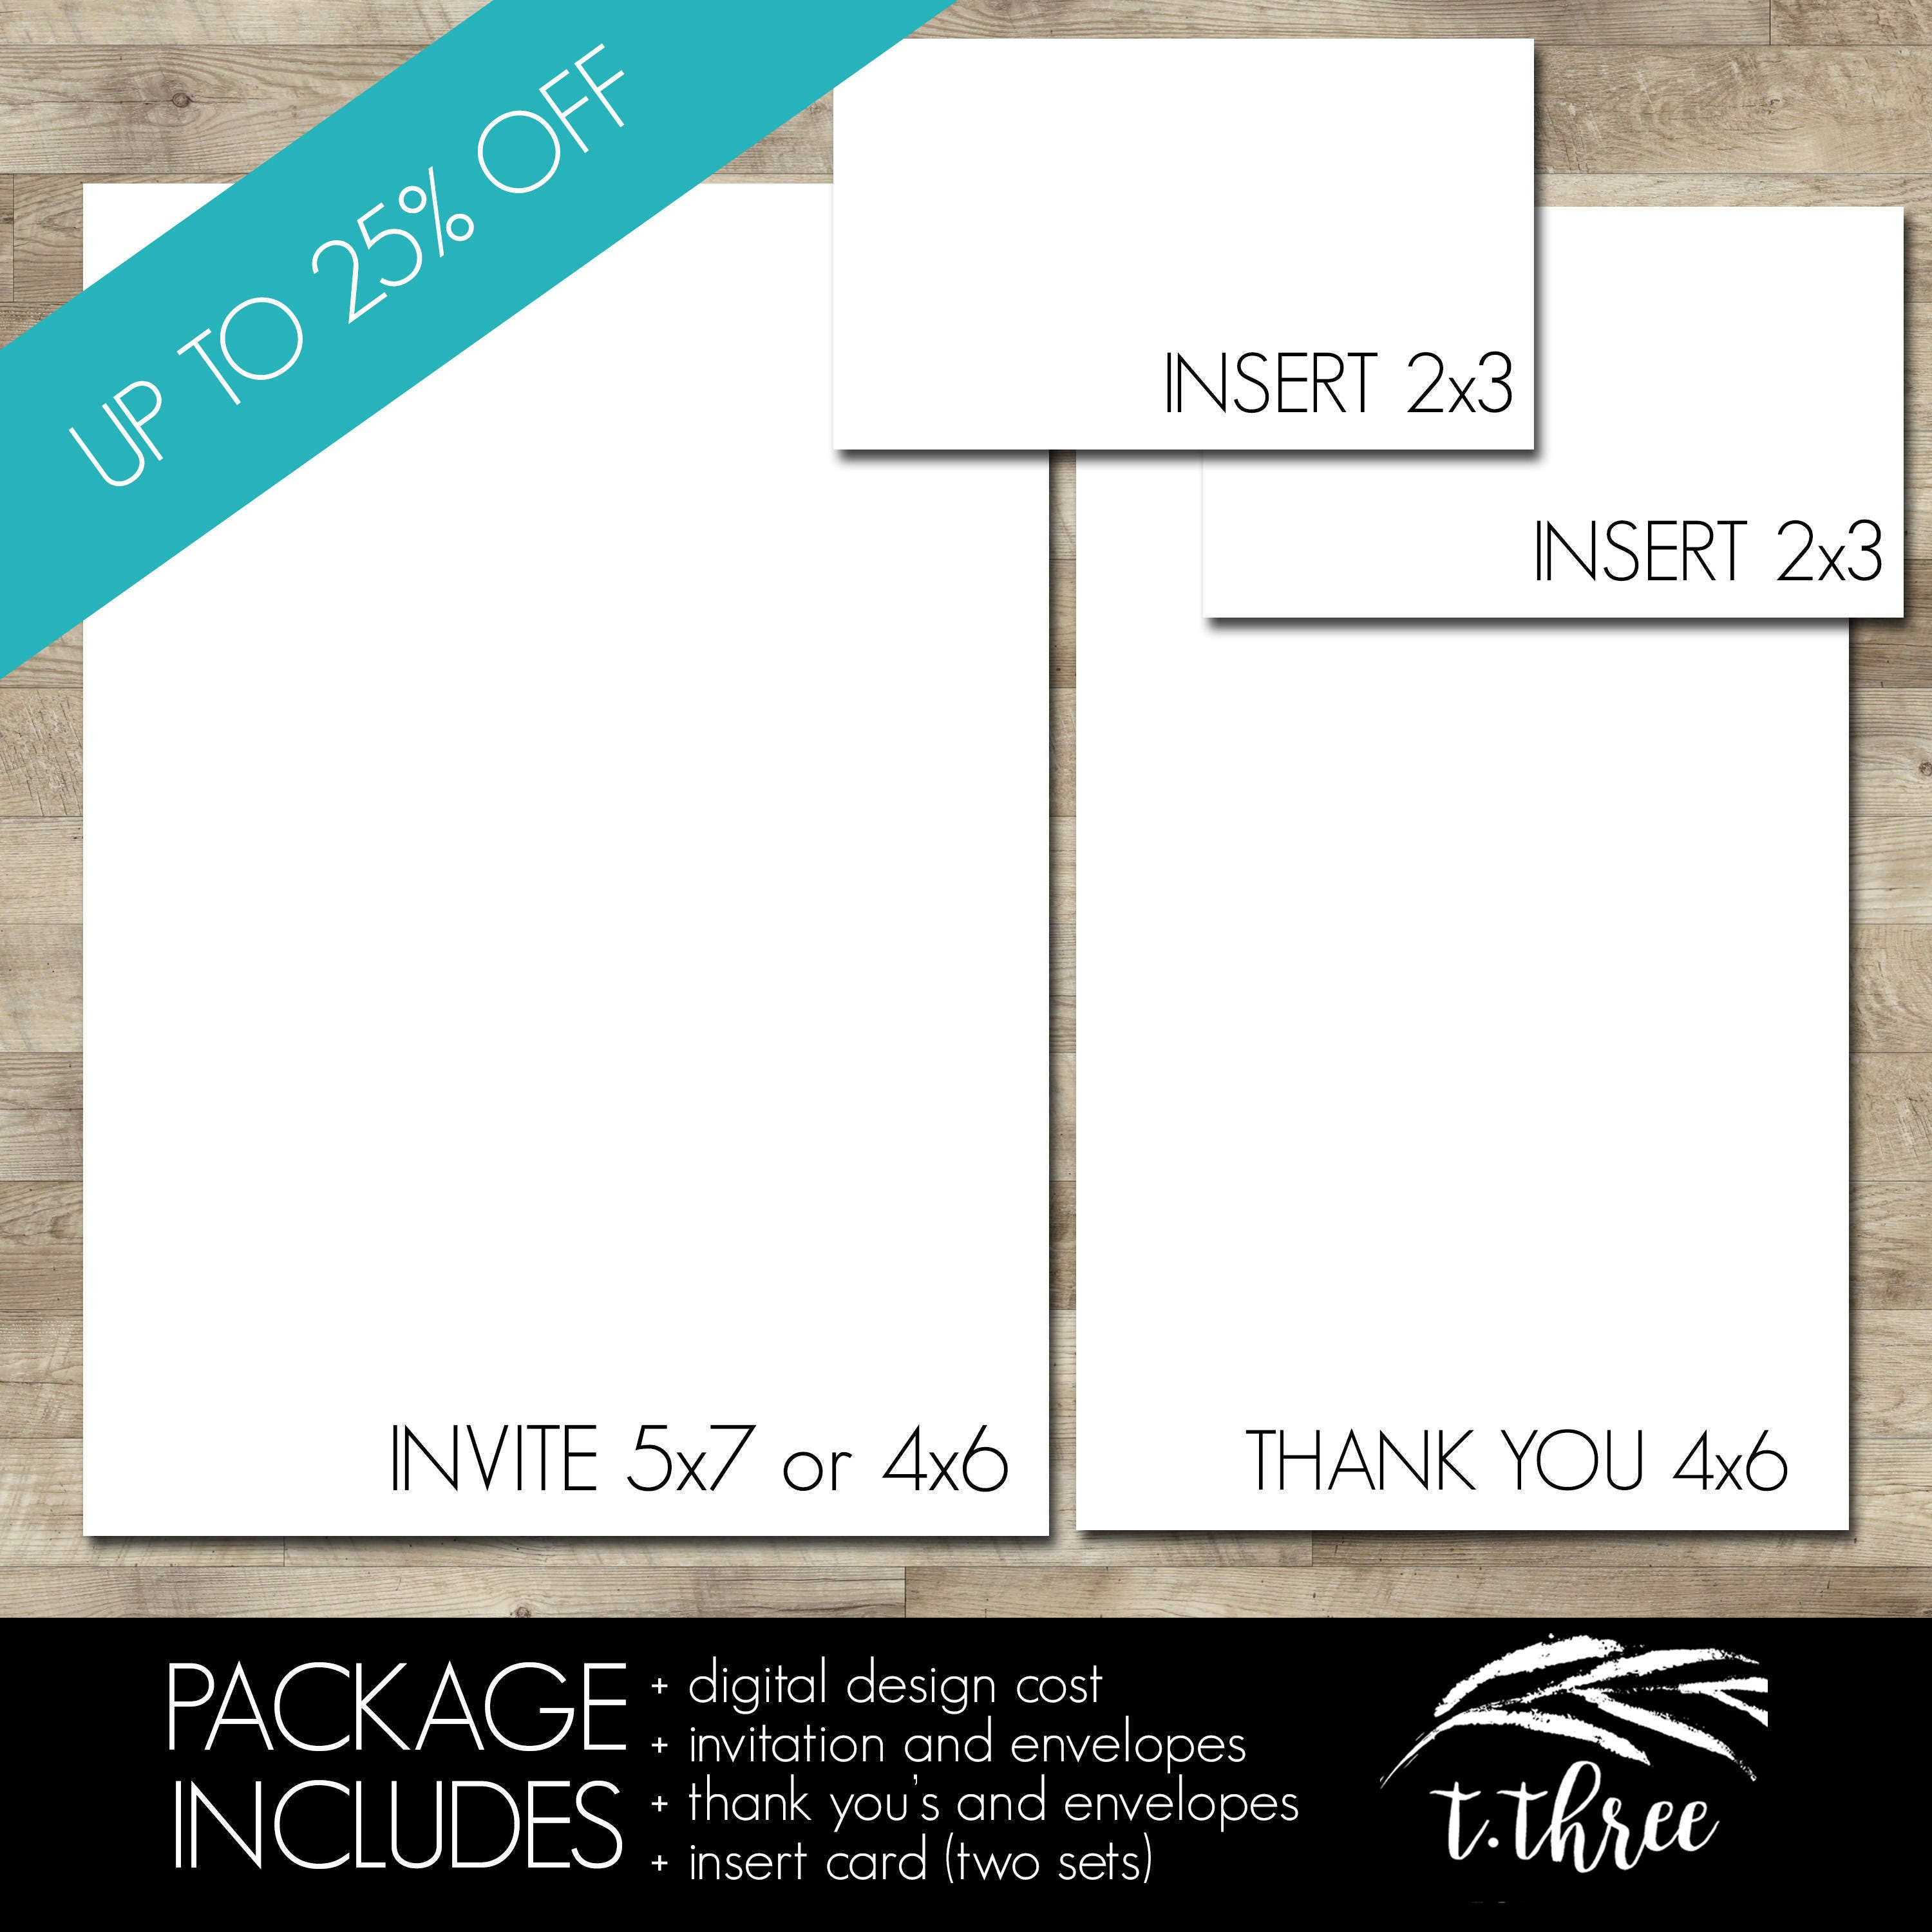 Professionally Printed Invitations Thank You Cards And Two Sets Of